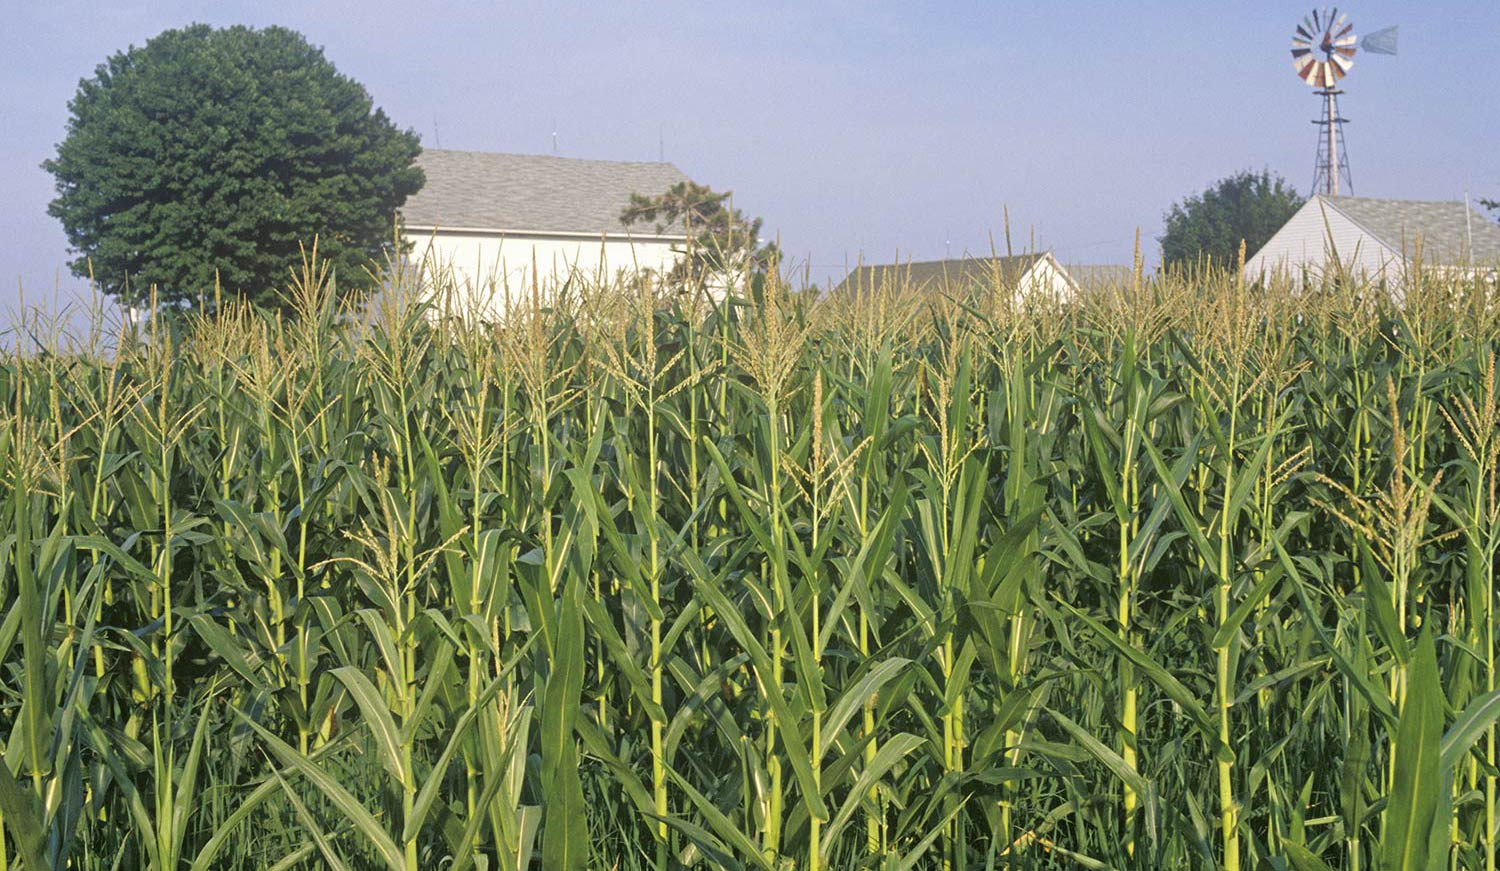 Plentiful corn stalks in front of a white farmhouse in South Bend